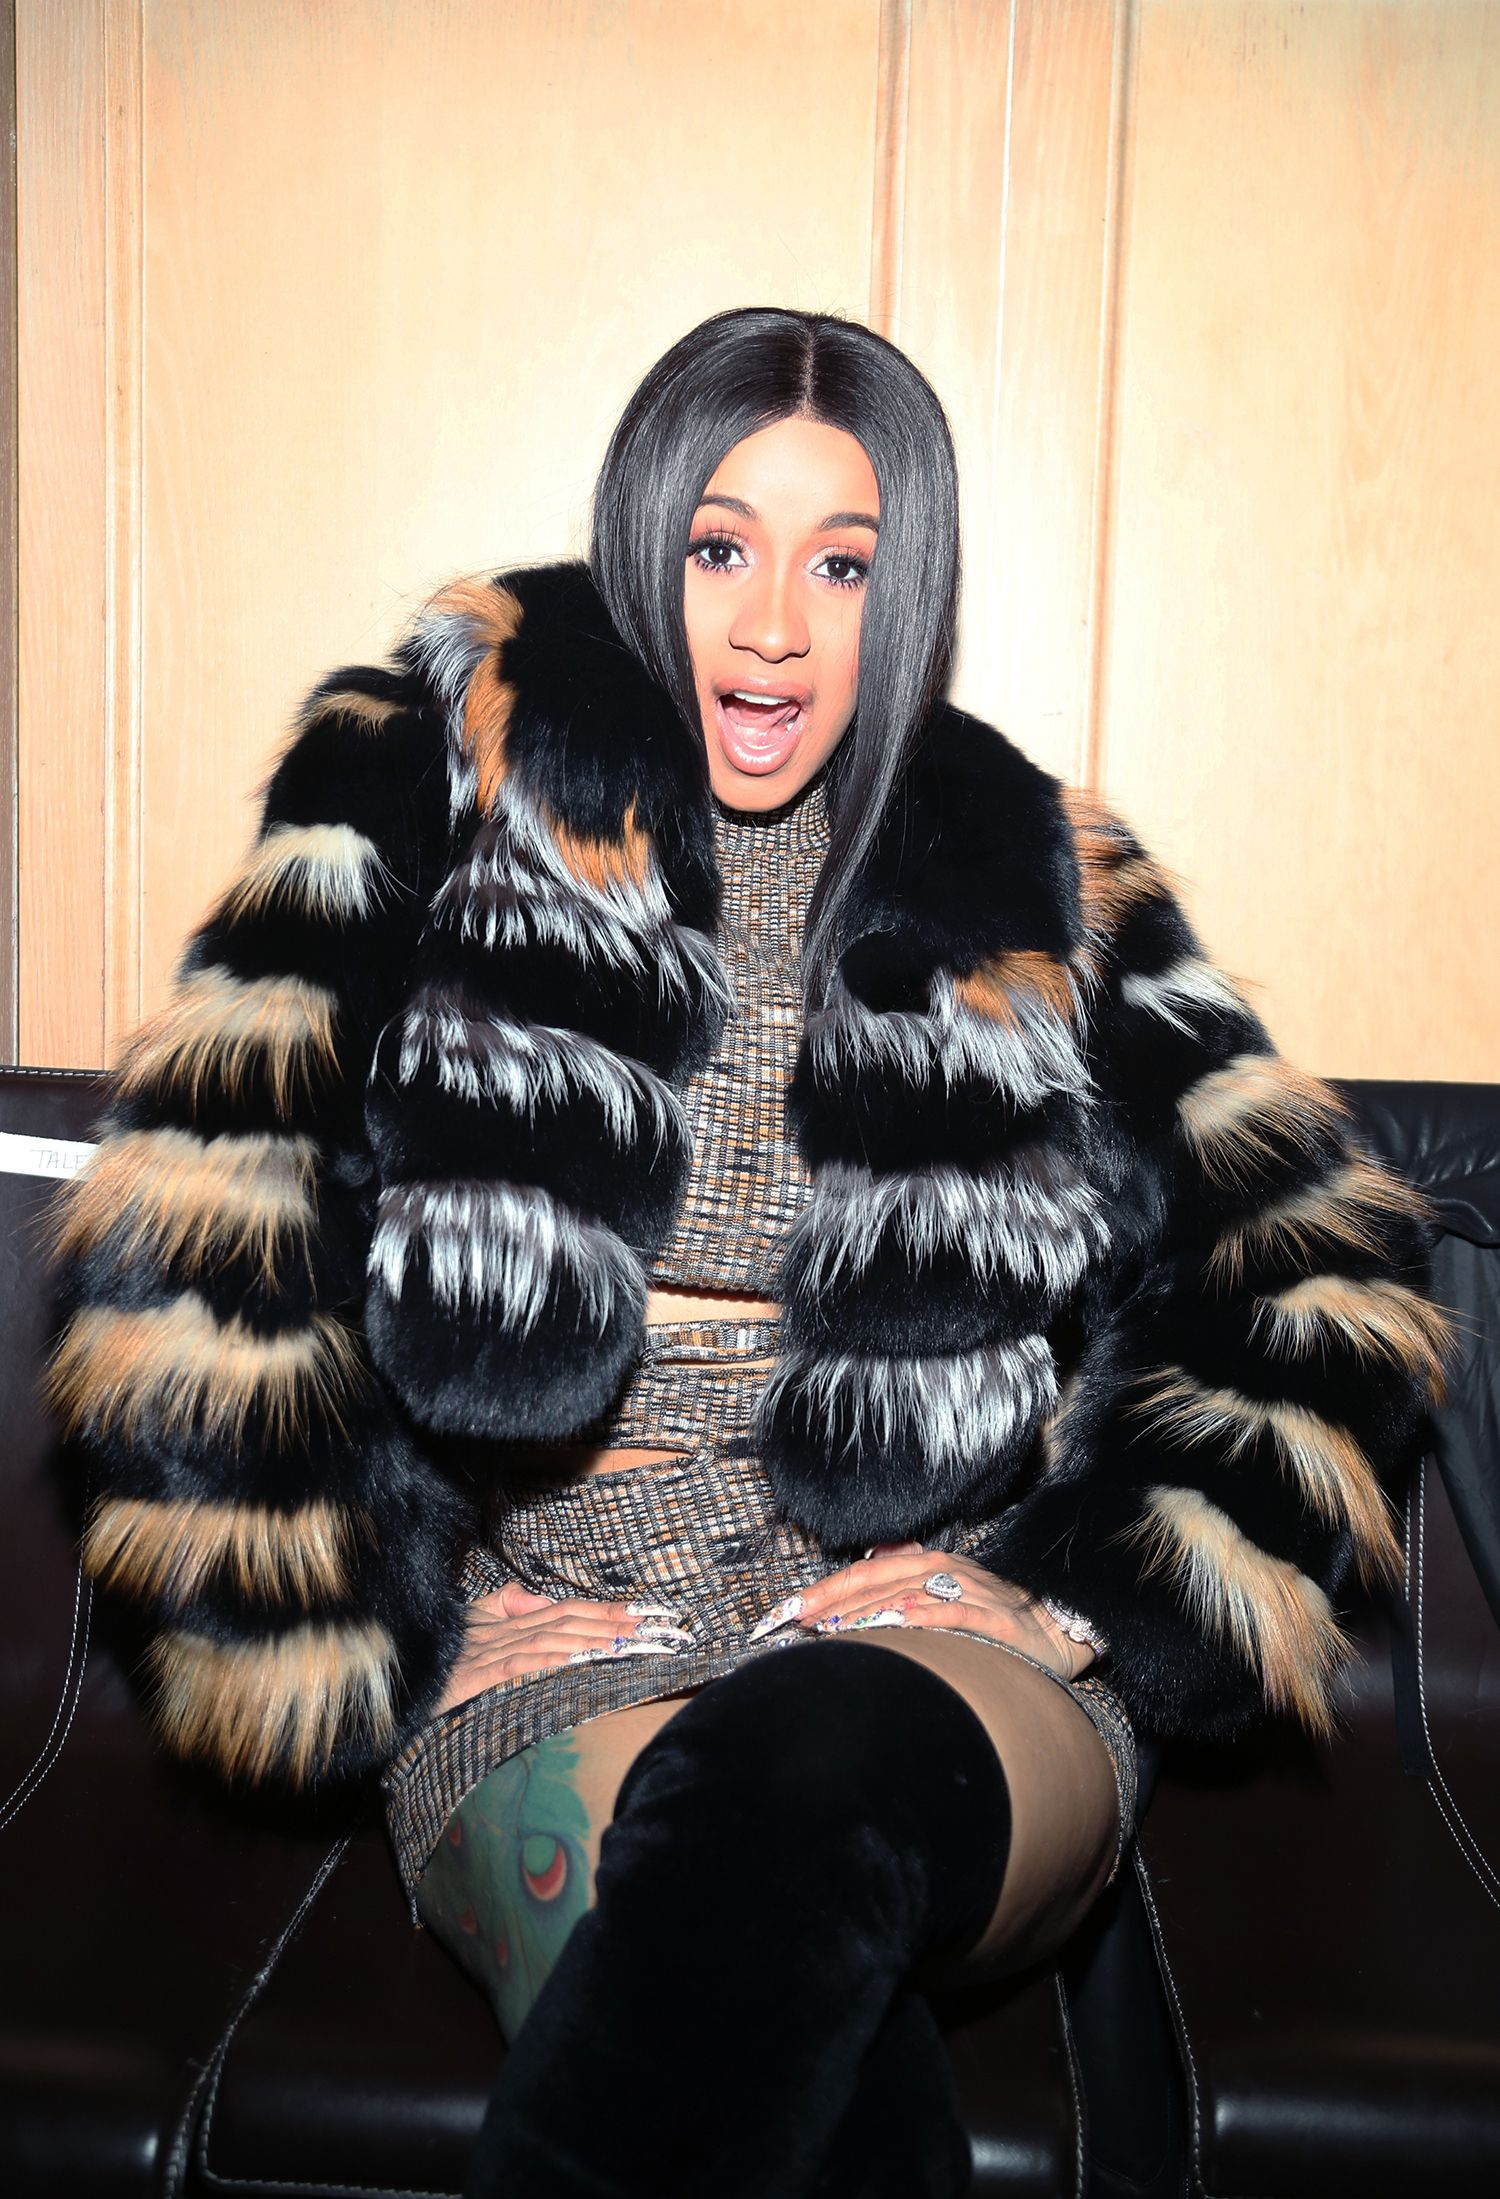 Best Cardi B Lyrics On Invasion Of Privacy Cardi B Drip Lyrics